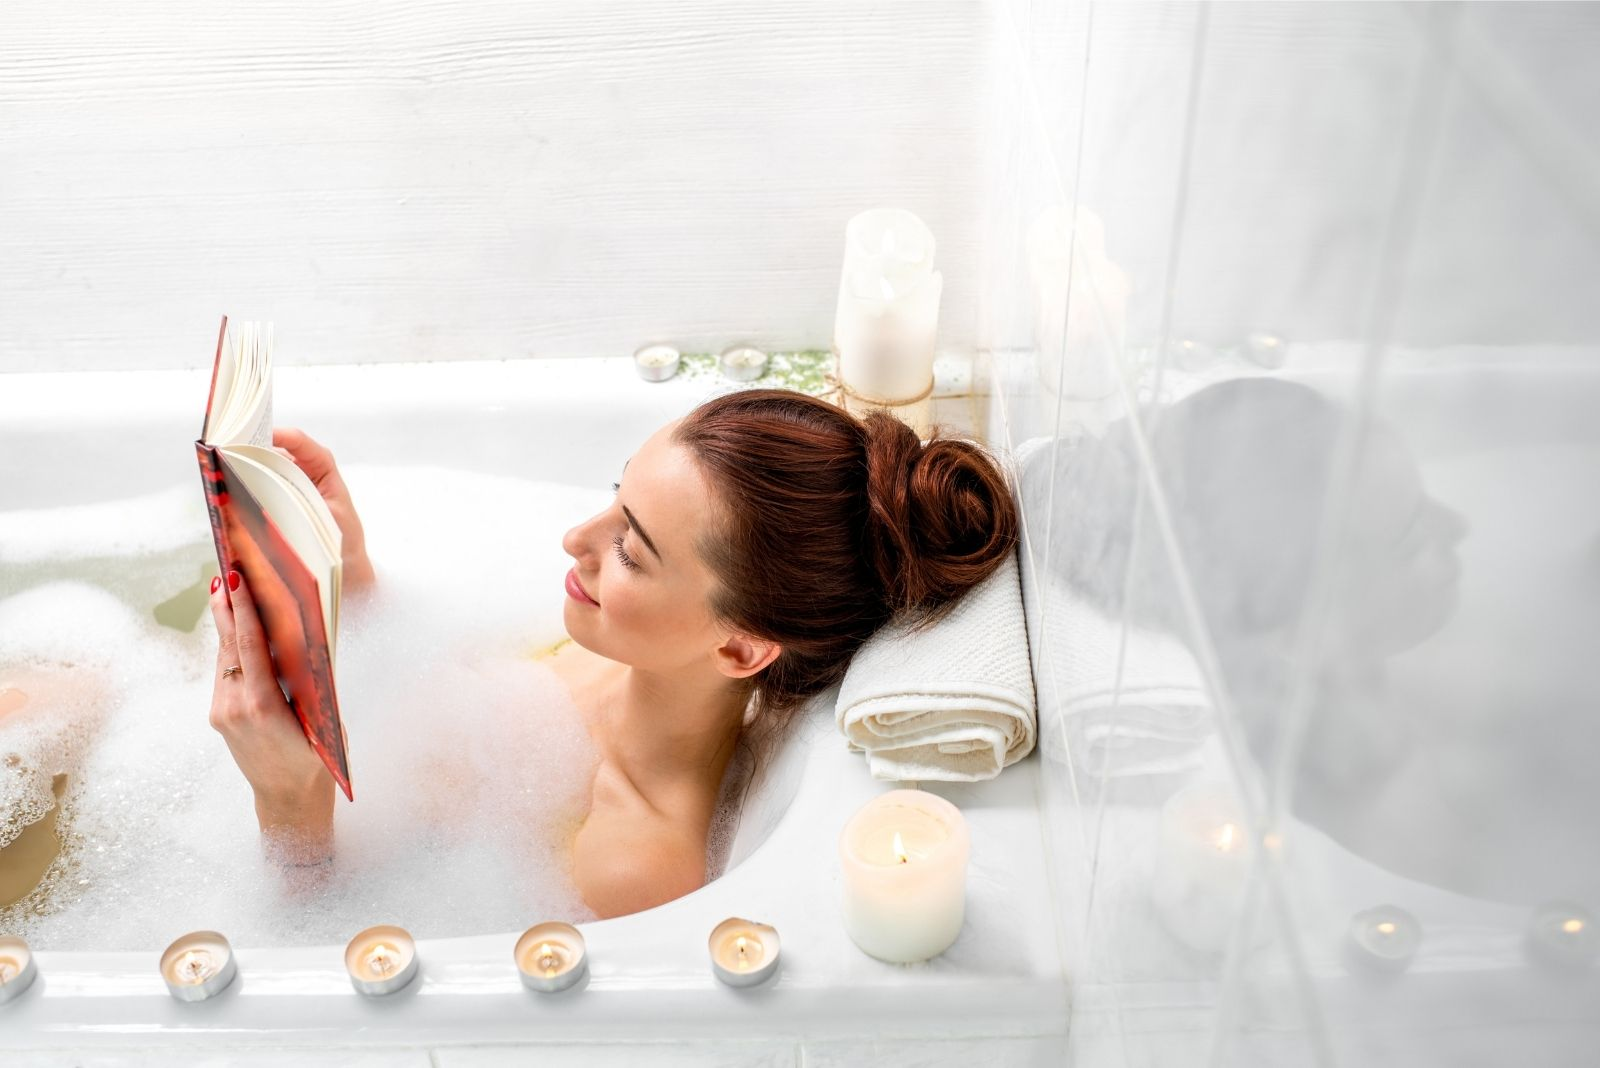 woman enjoyed bathing in the tub with lighted candles around while reading a book